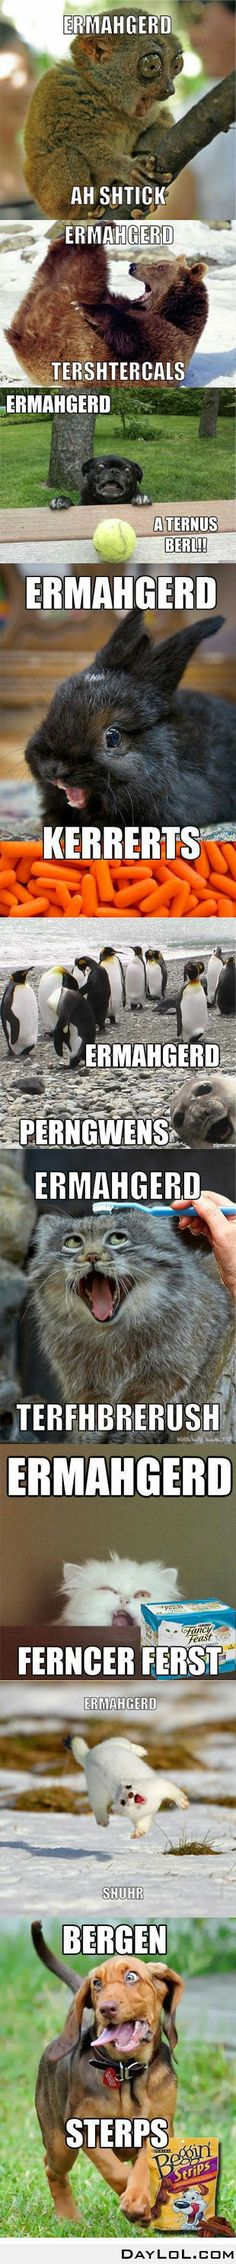 ERMAHGERD!!! {The one with the bear really made me lose it.} Hahaha @Emily Wick I bet you'll love this.You too @Megan Myers